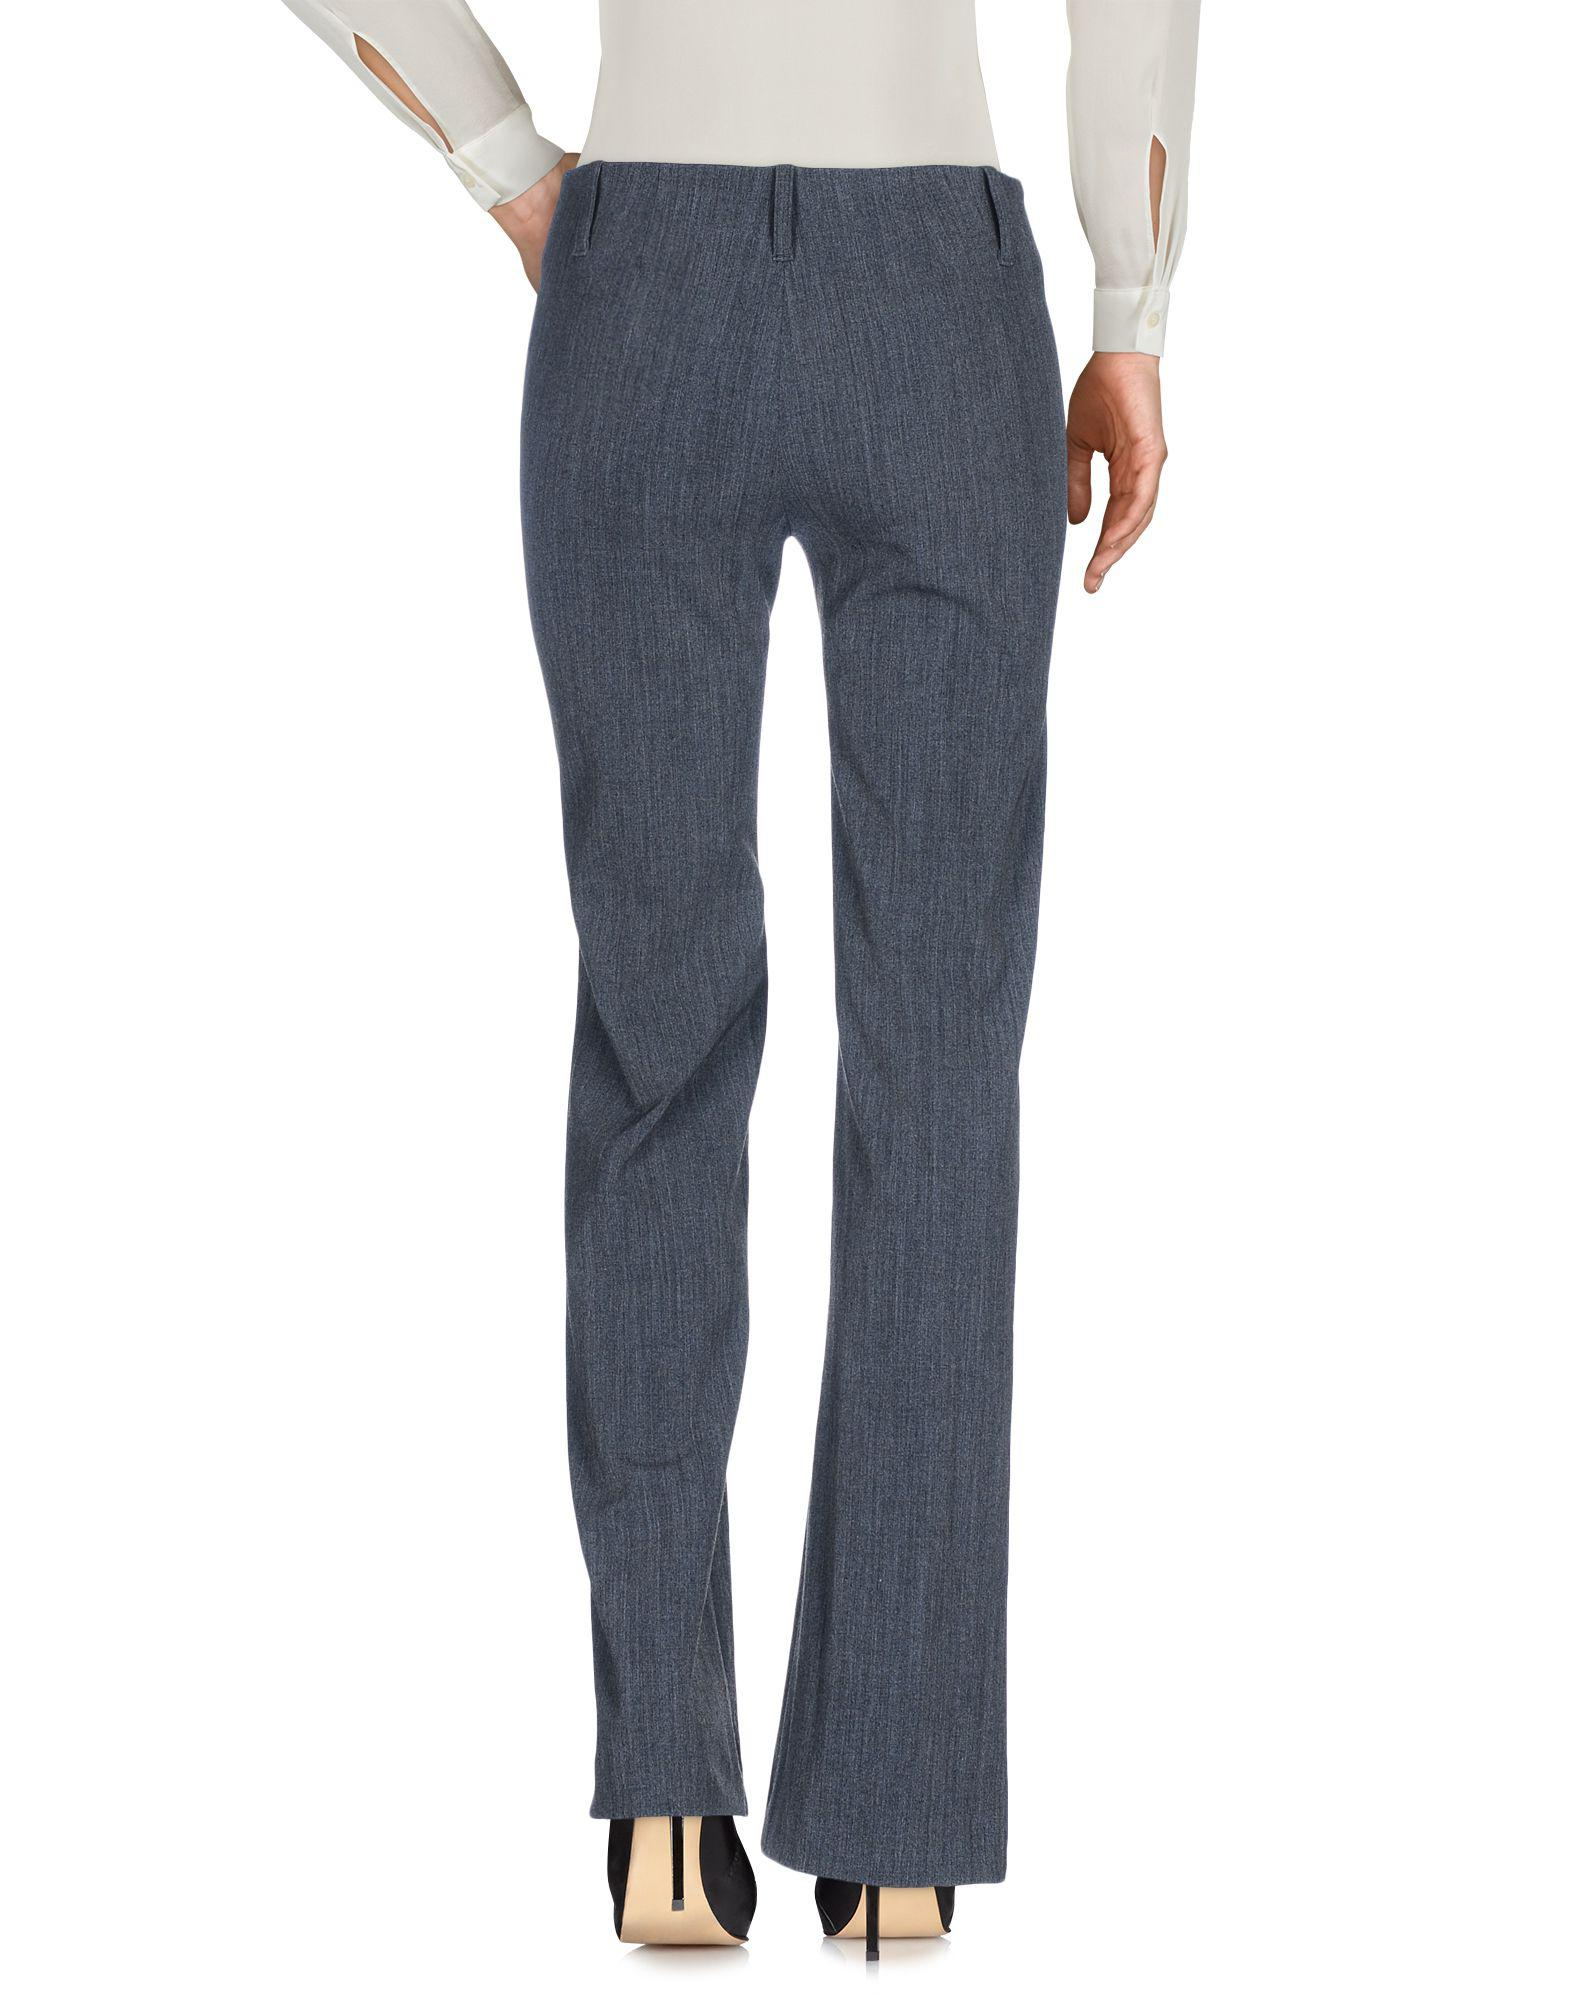 Casual In Scarpa Gray Roberta Lyst Trouser Y76gvfIby